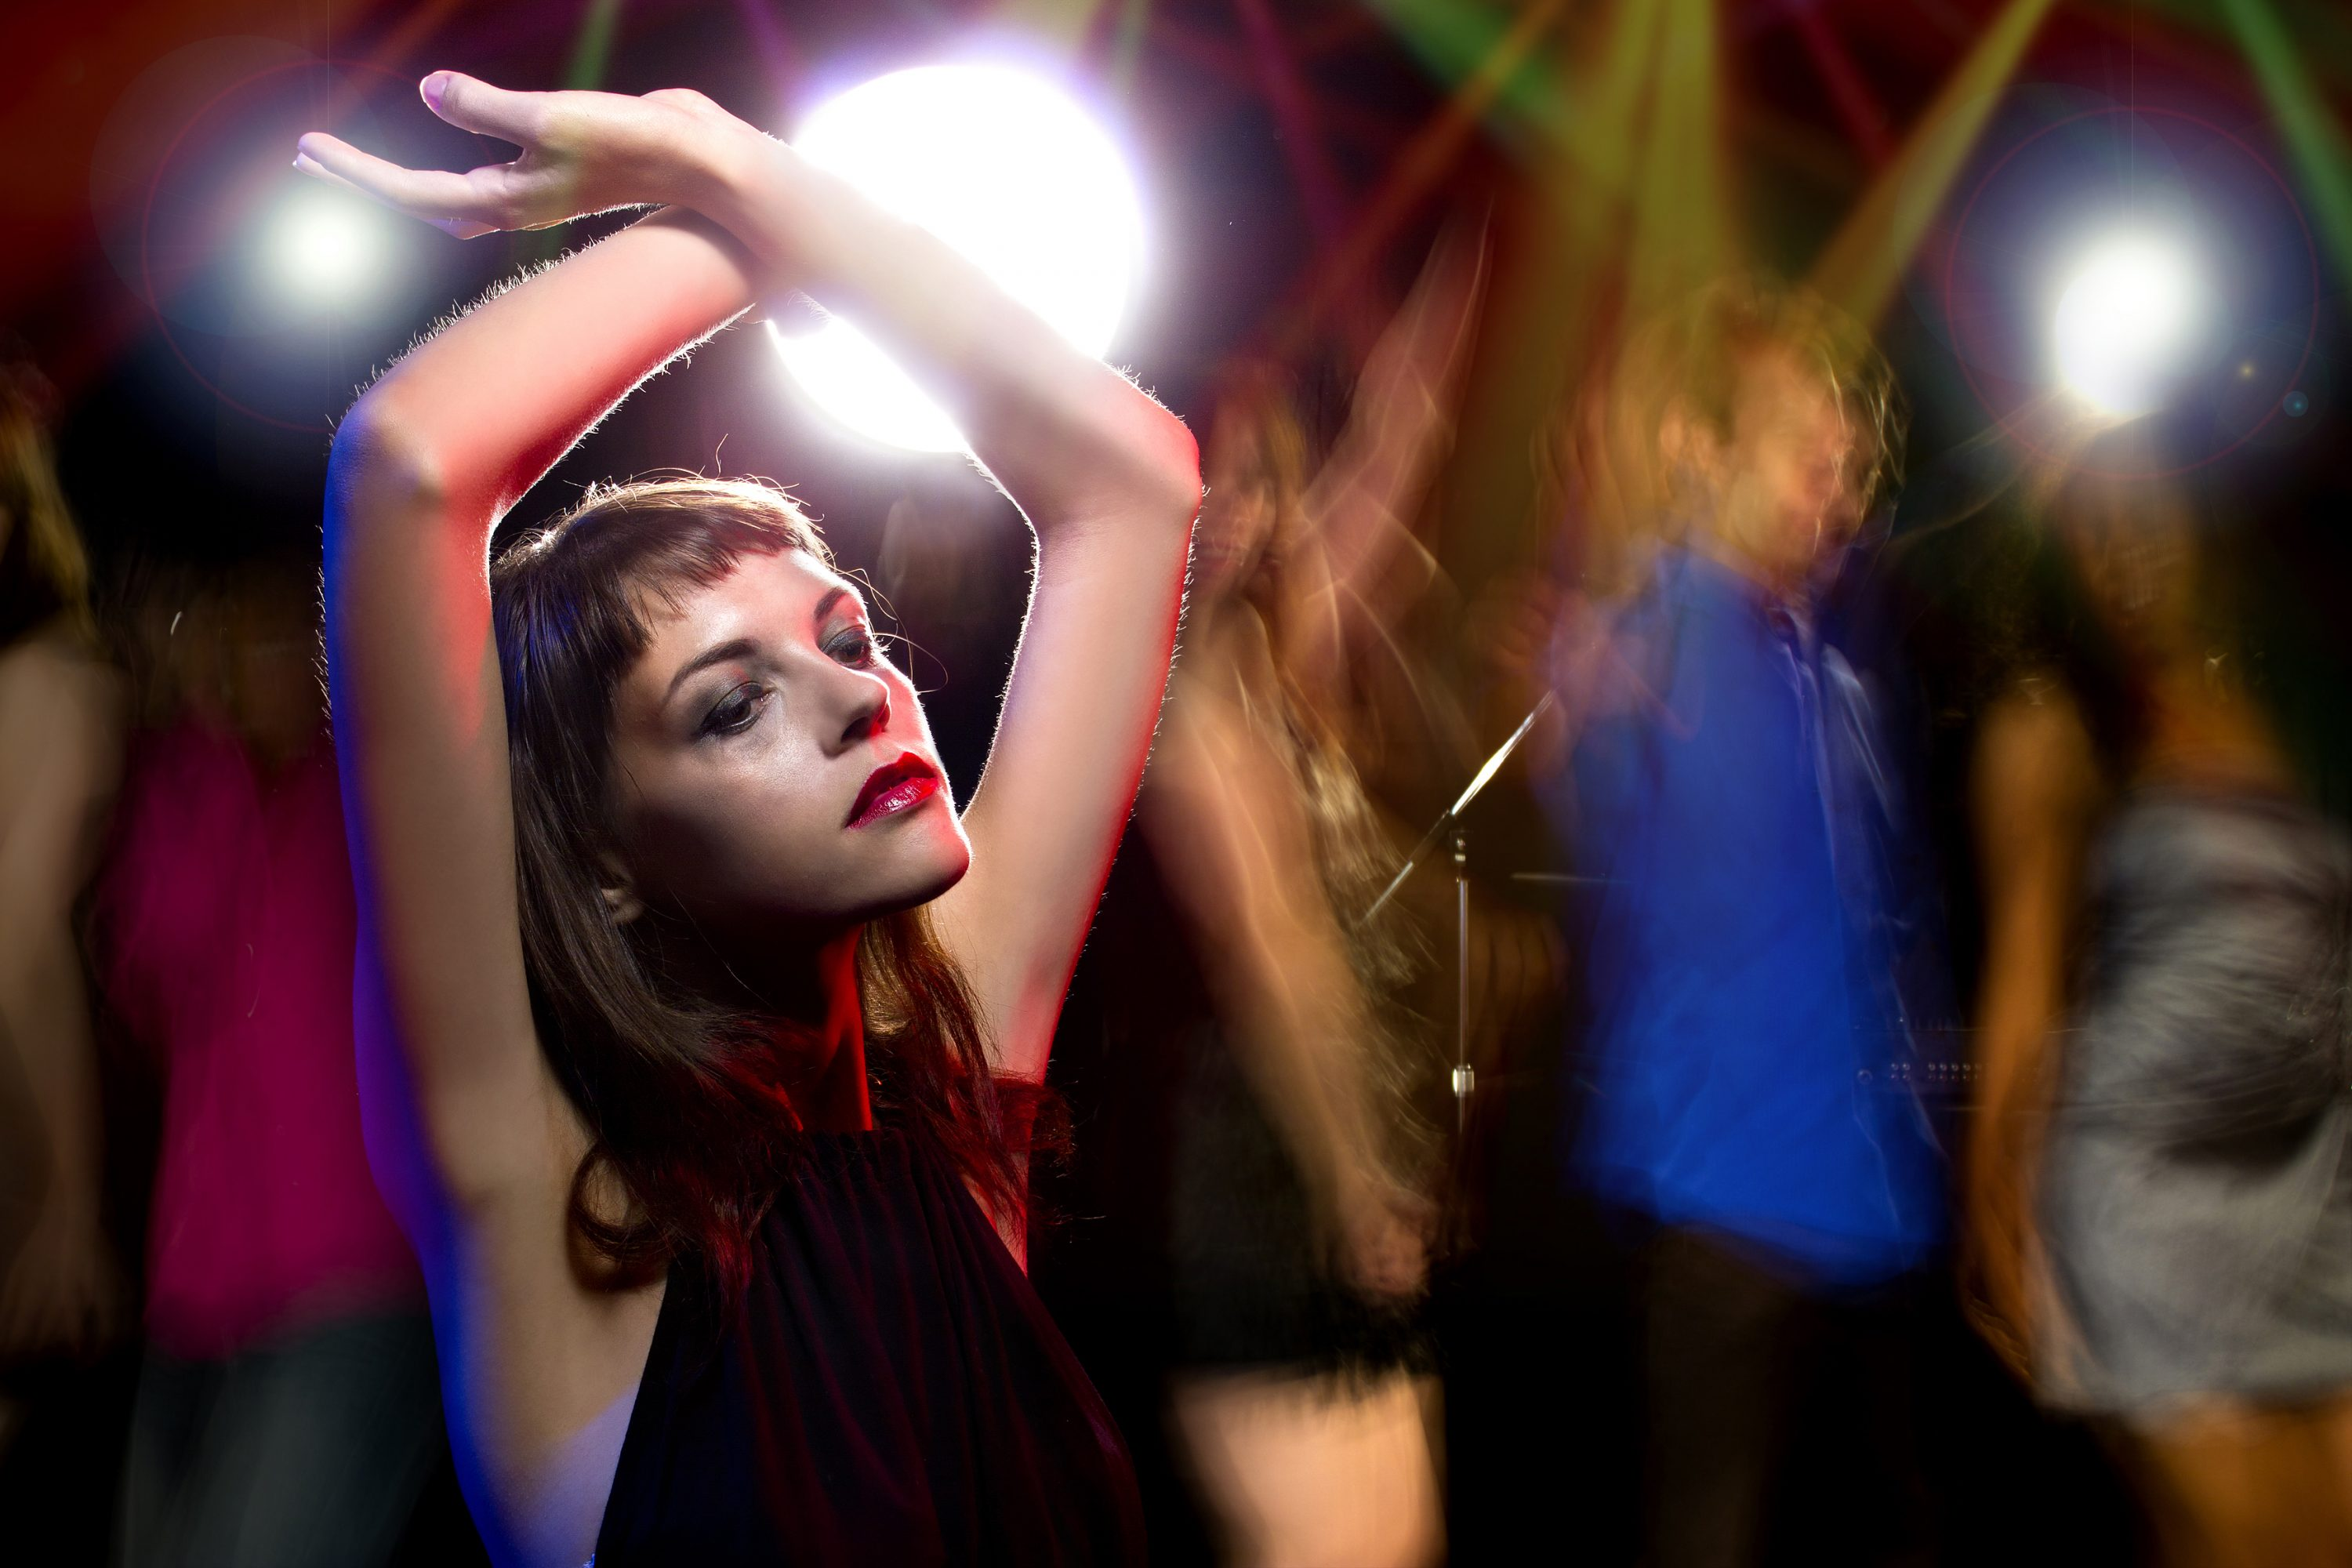 Photo of an intoxicated female dancing at a nightclub and high on drugs or drunk on alcohol. Her make up is smeared like a junkie. She is either a drug addict or an alcoholic. (iStock Photo)